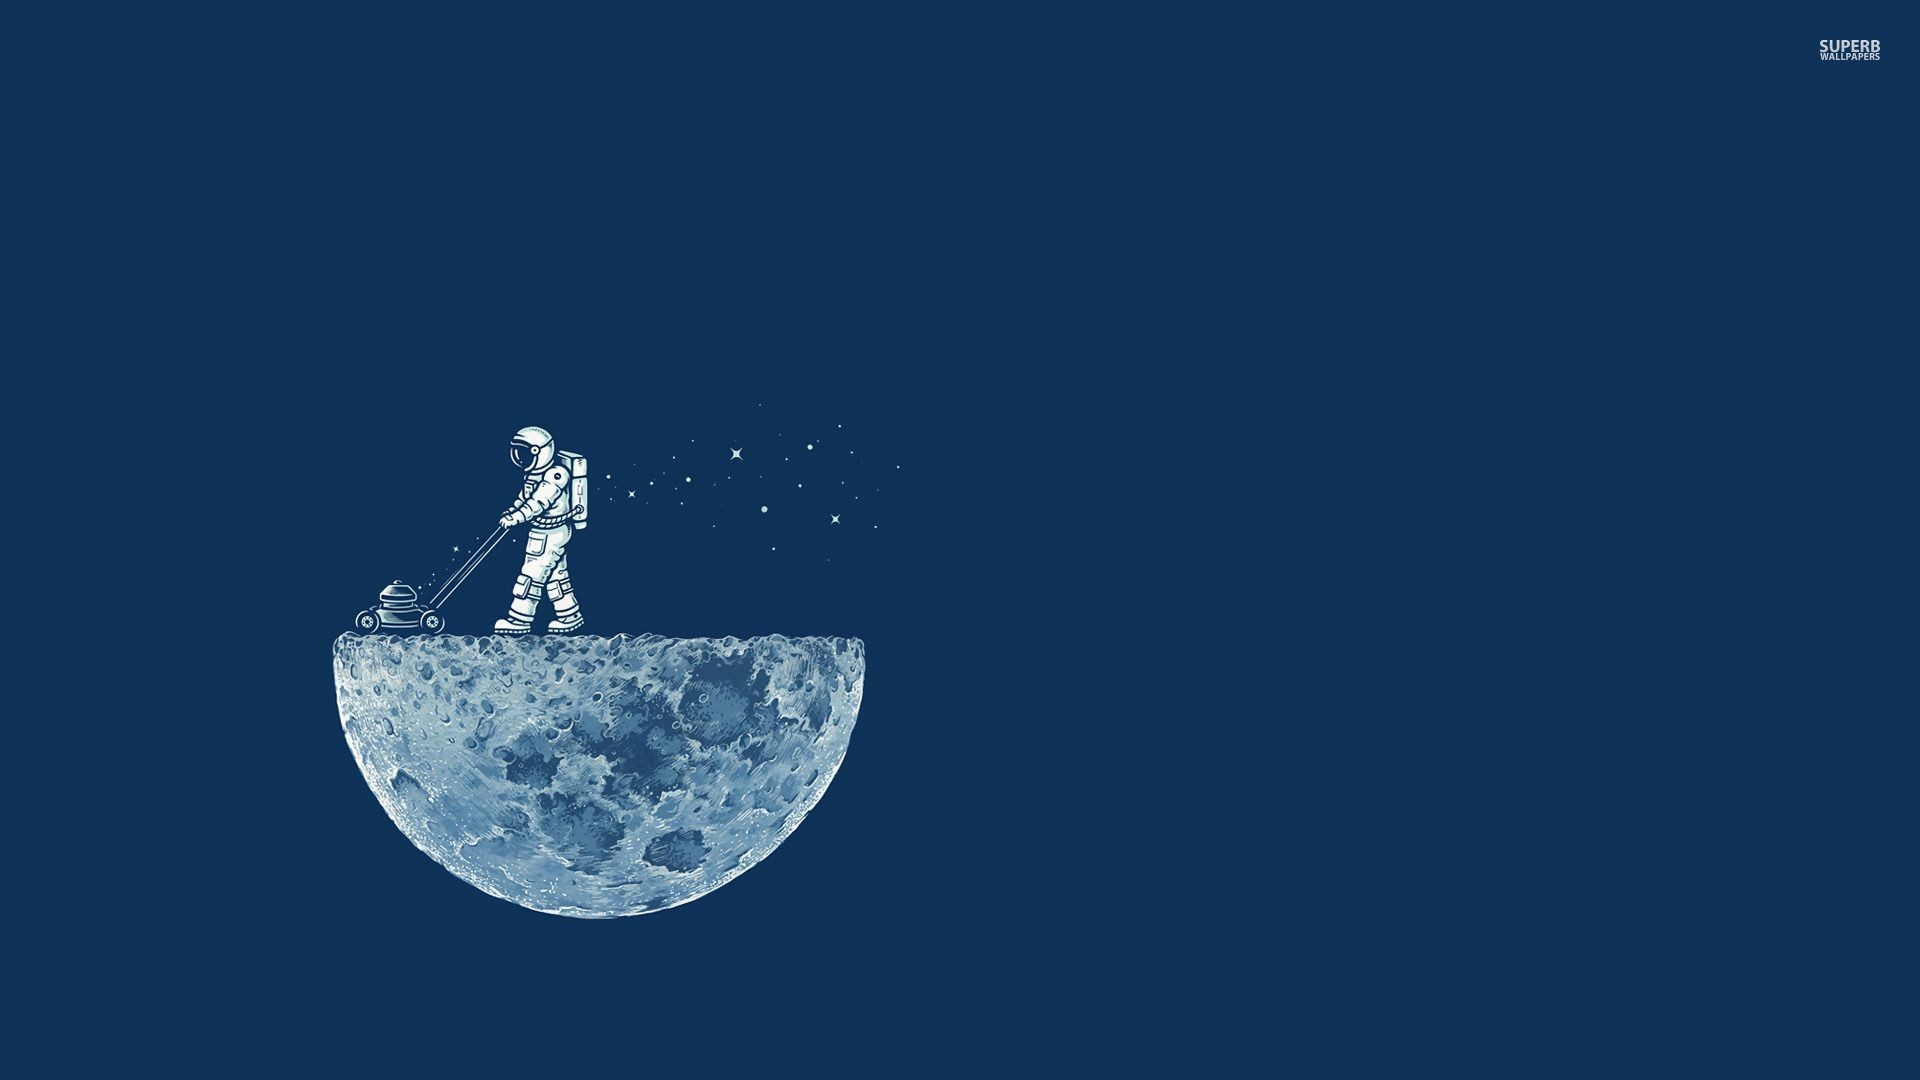 1920x1080 Astronaut mowing the moon wallpaper - Funny wallpapers - #31038